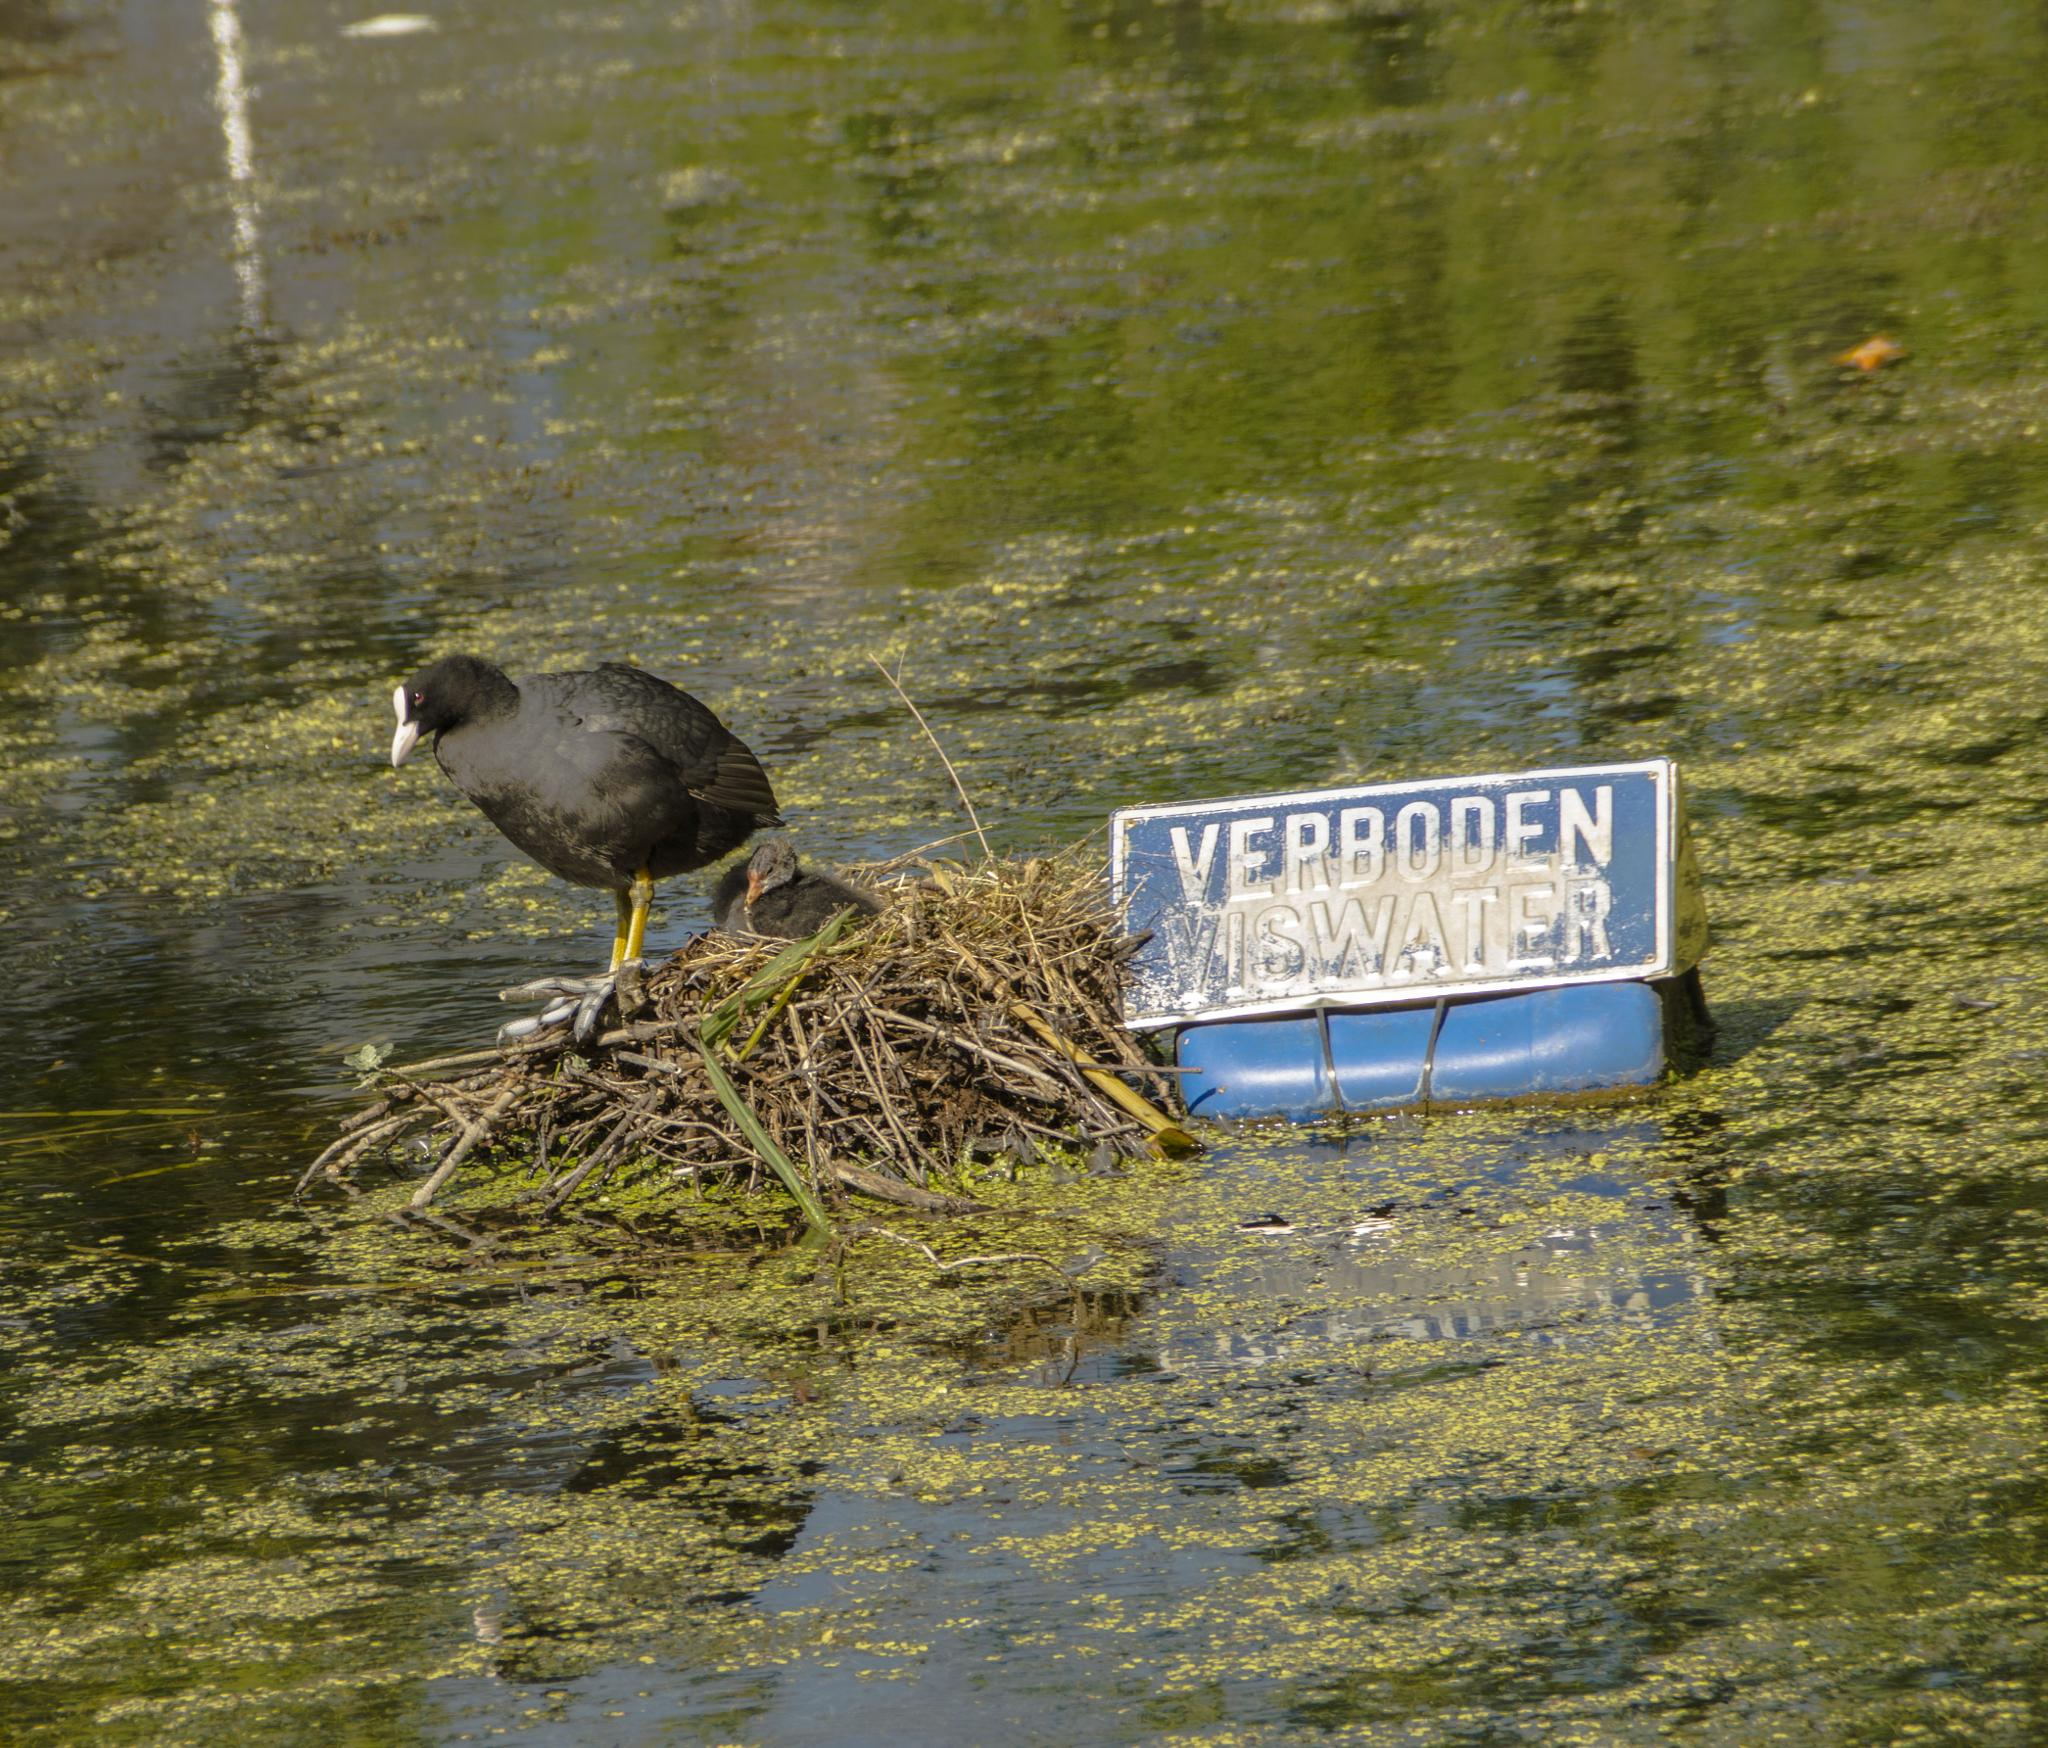 Coot with young in nest by Roelof de Haan